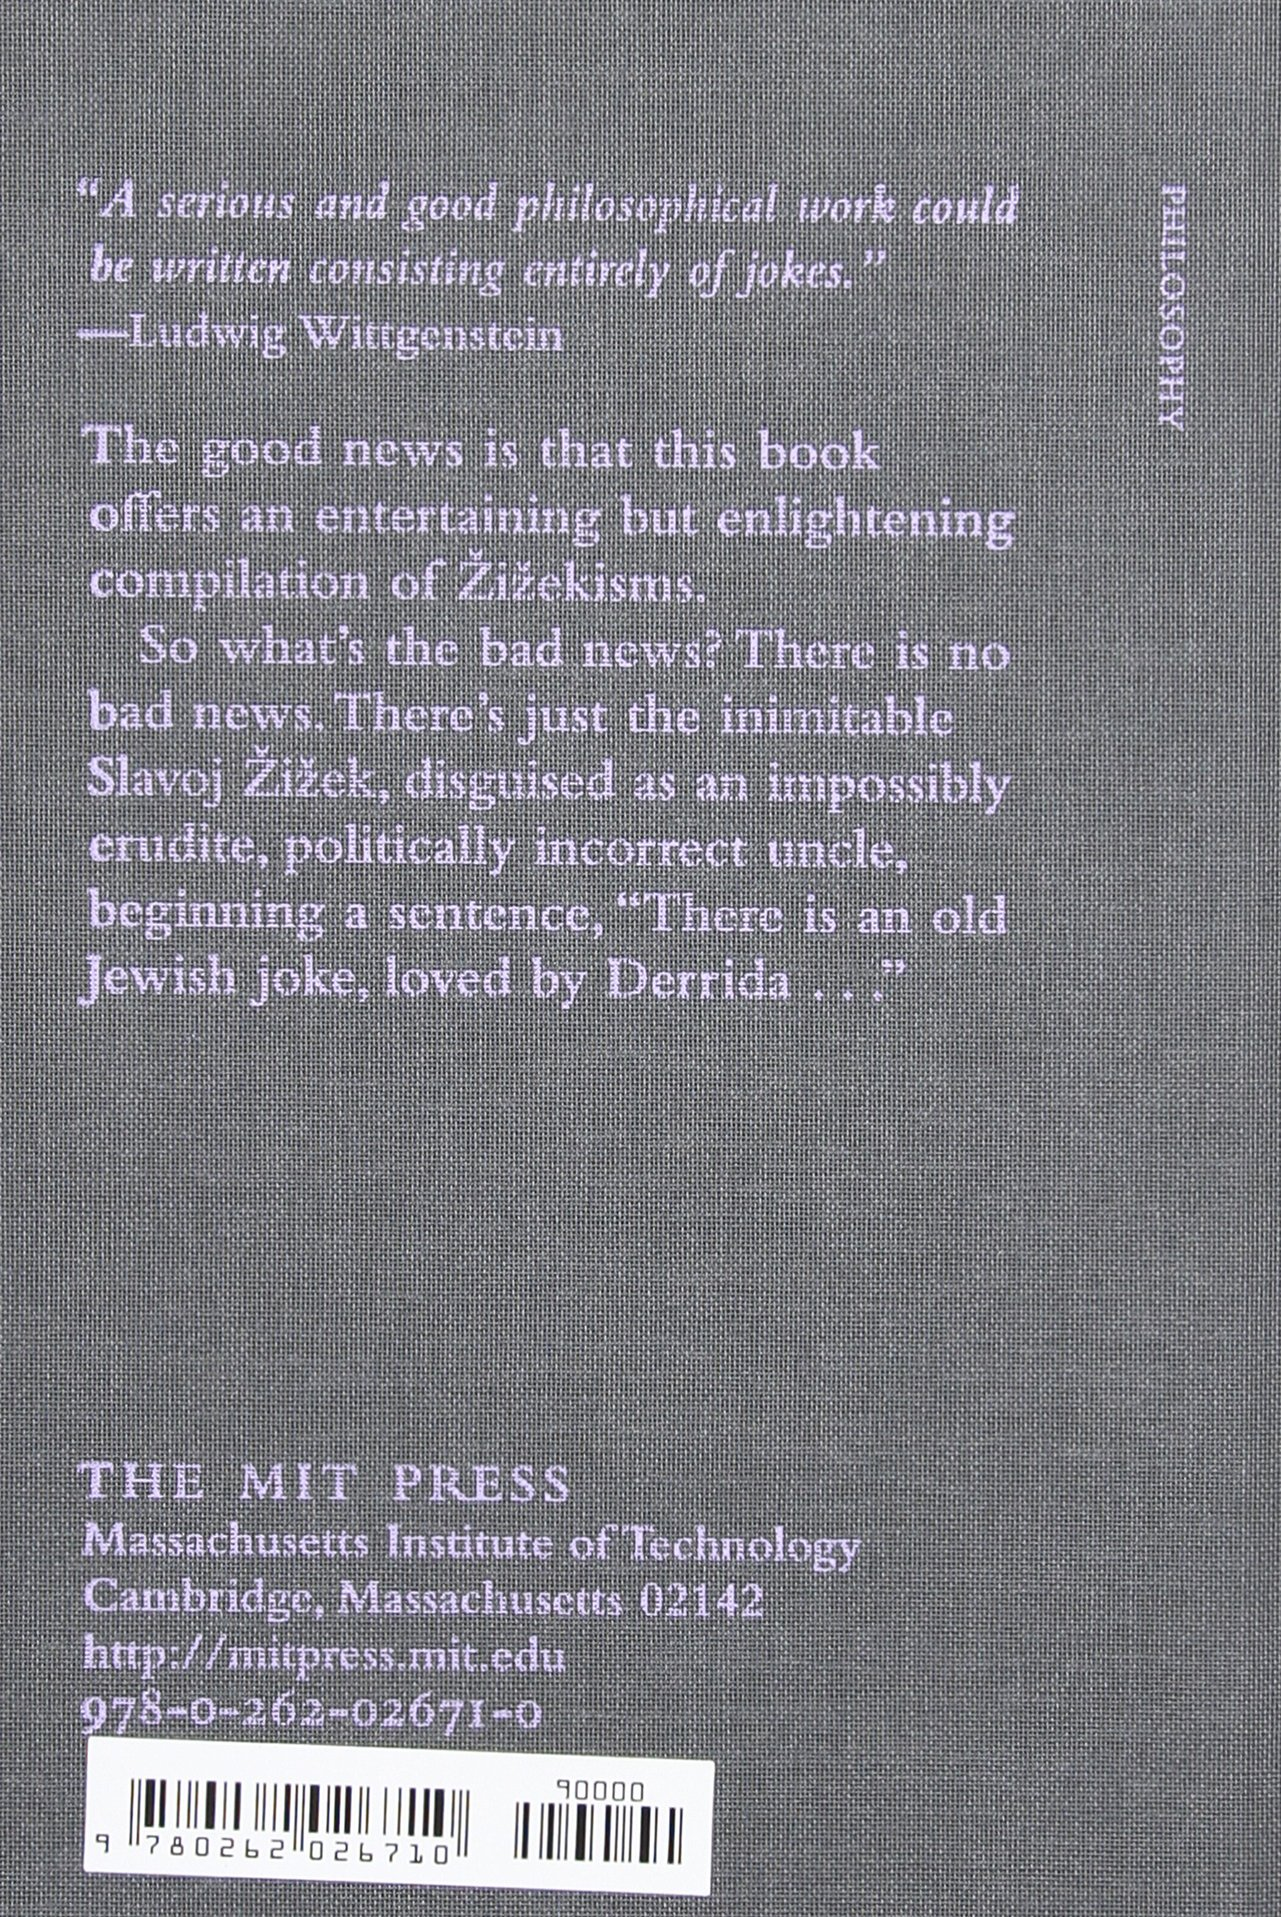 Zizeks Jokes Did You Hear The One About Hegel And Negation Circuit Of Life Funny Pictures Love Indian Mit Press Slavoj Zizek Audun Mortensen Momus 8601300170725